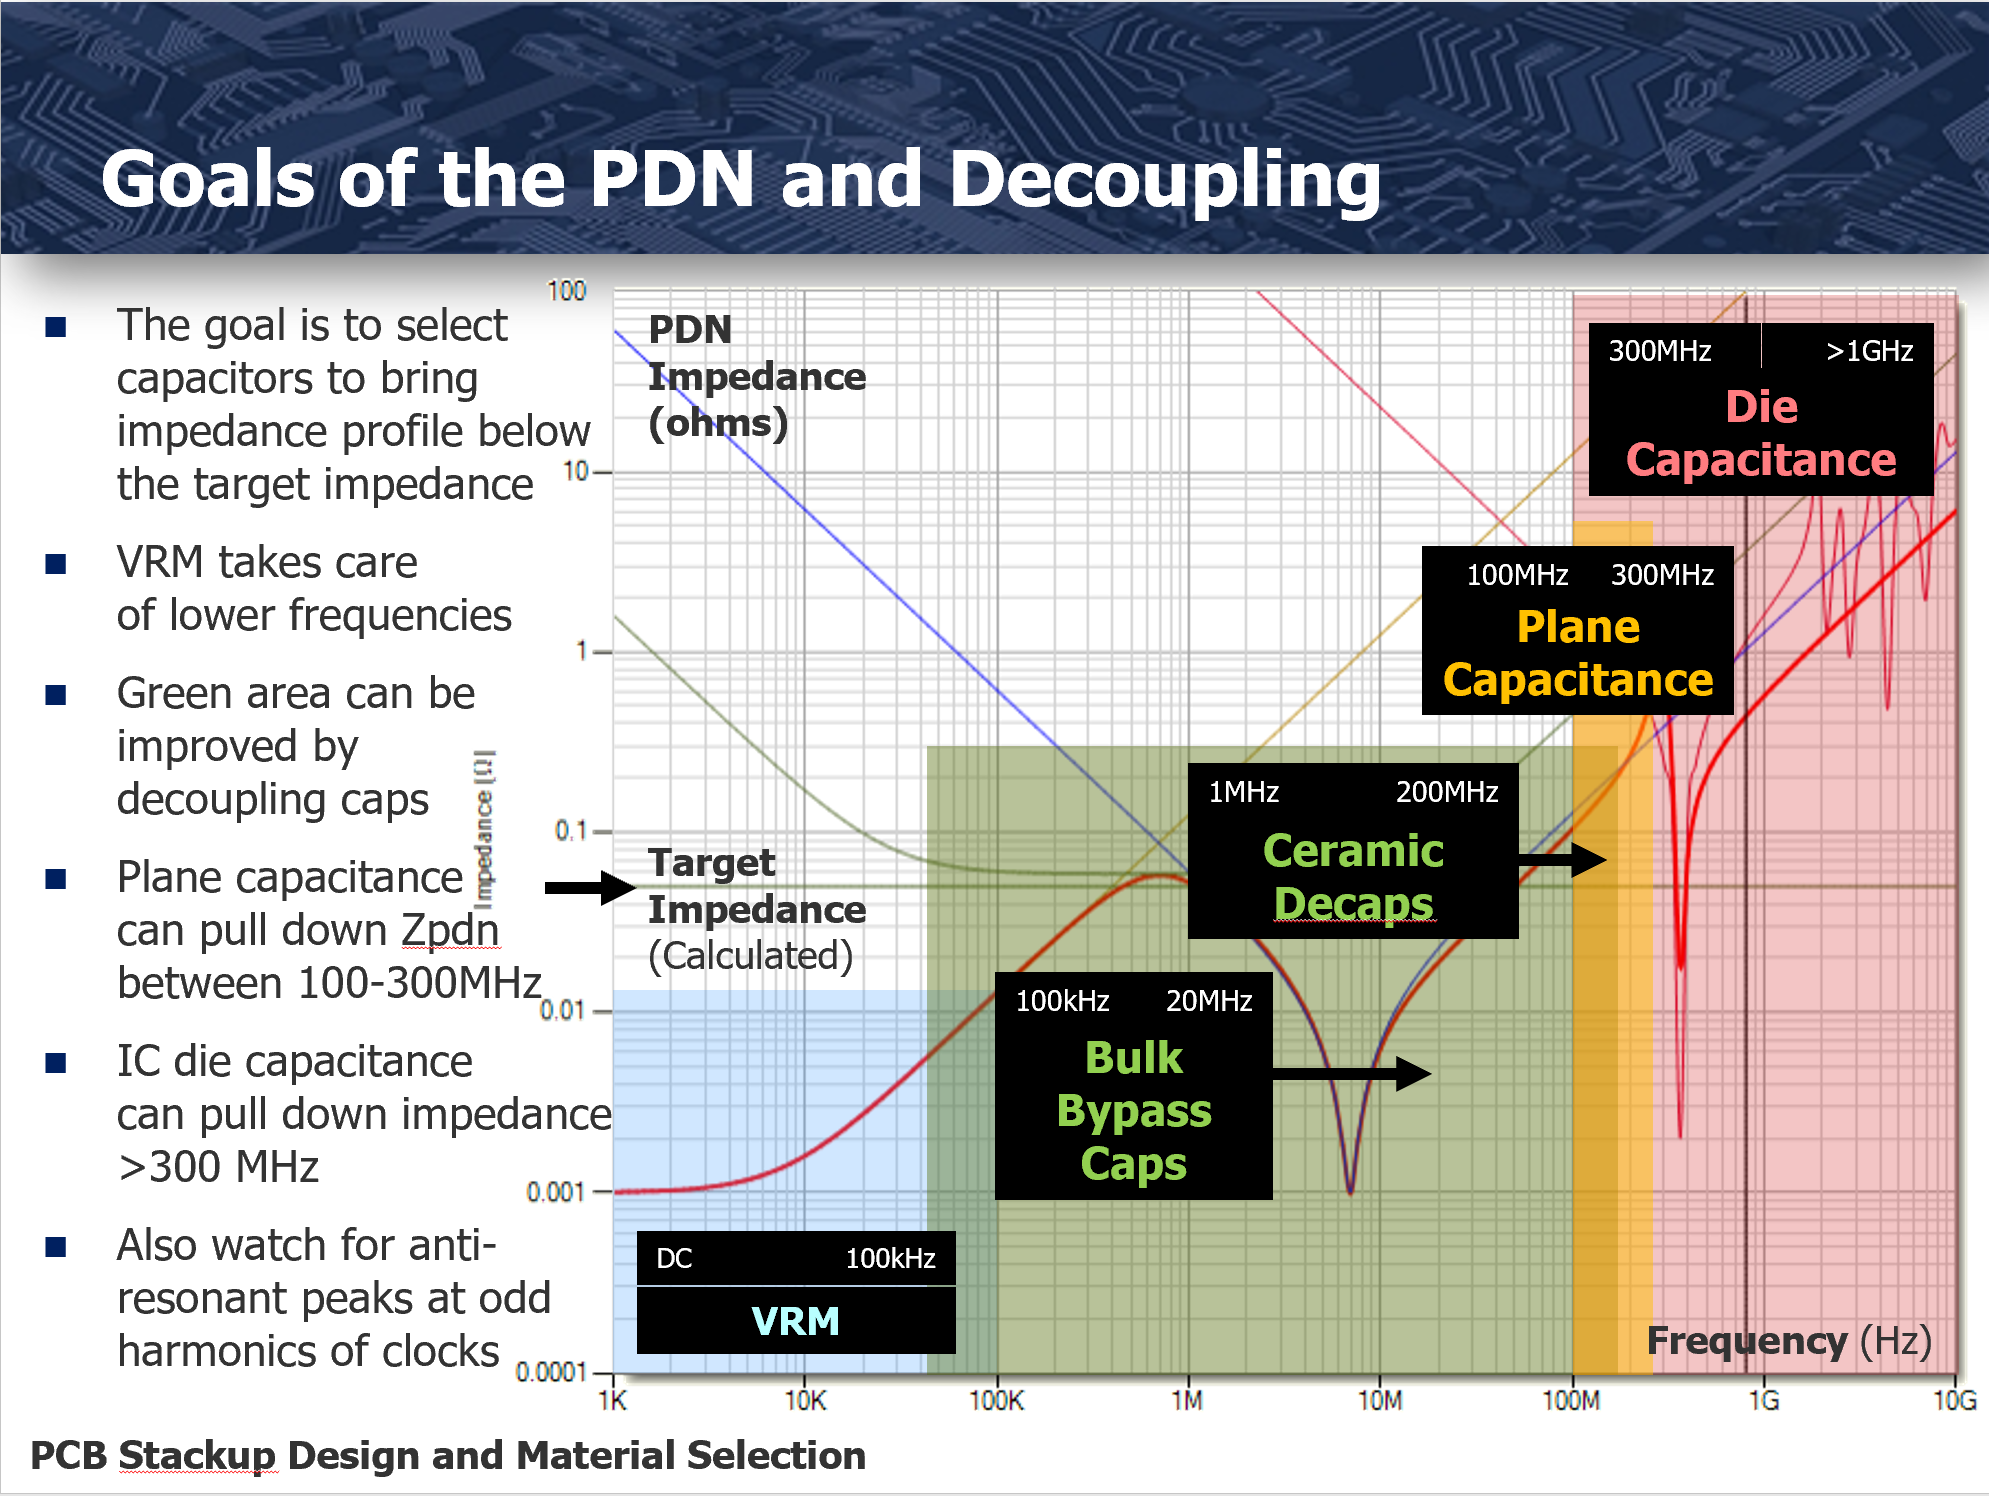 Goals of the PDN and Decoupling